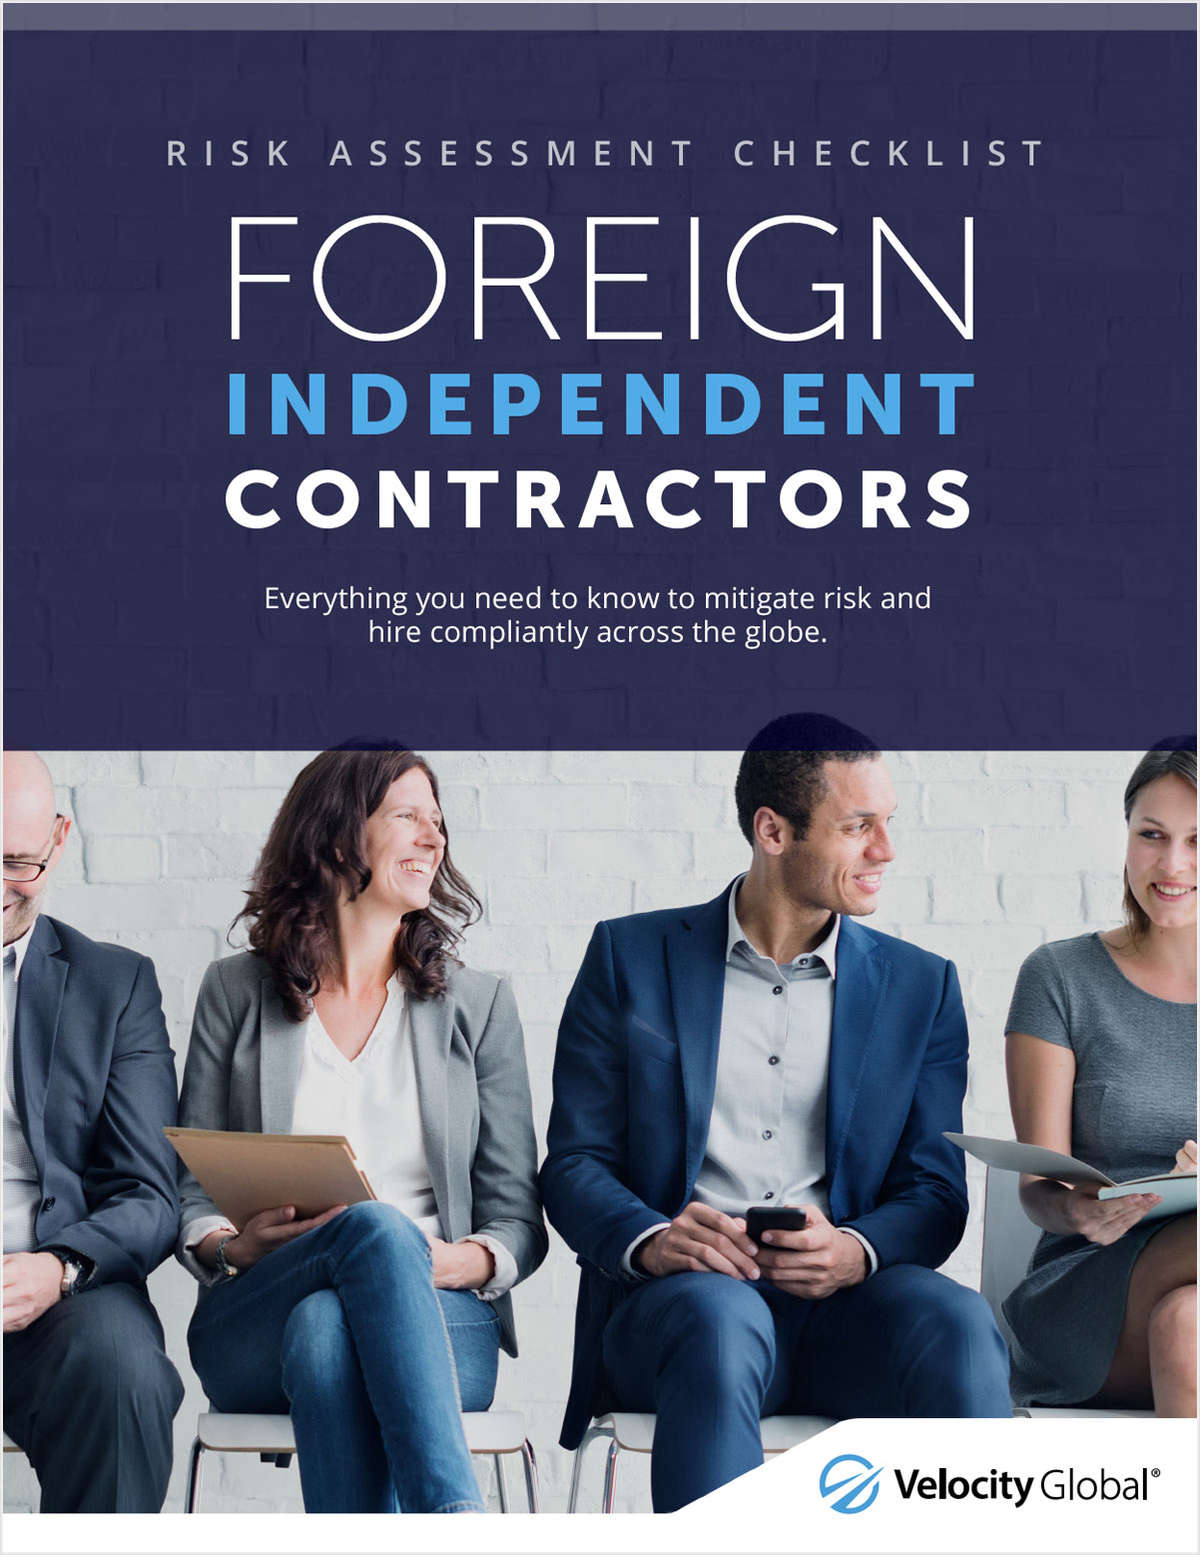 Foreign Independent Contractors: Risk Assessment Checklist